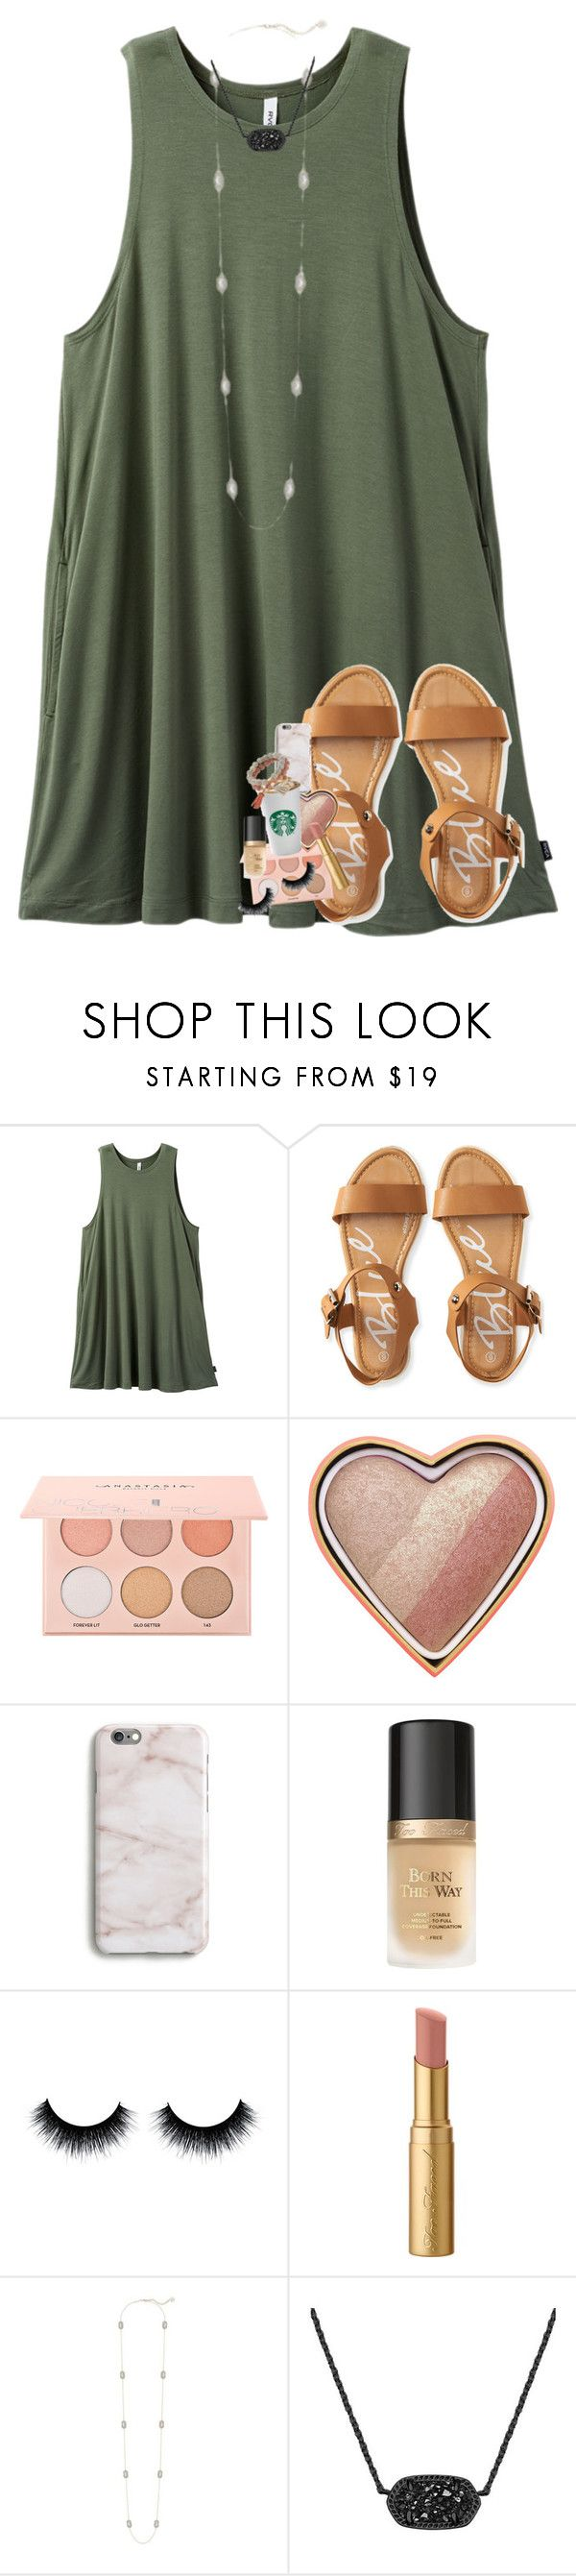 """""""so... rtd."""" by lindsaygreys ❤ liked on Polyvore featuring RVCA, Aéropostale, Too Faced Cosmetics, Harper & Blake, Kendra Scott and Coco Lane"""